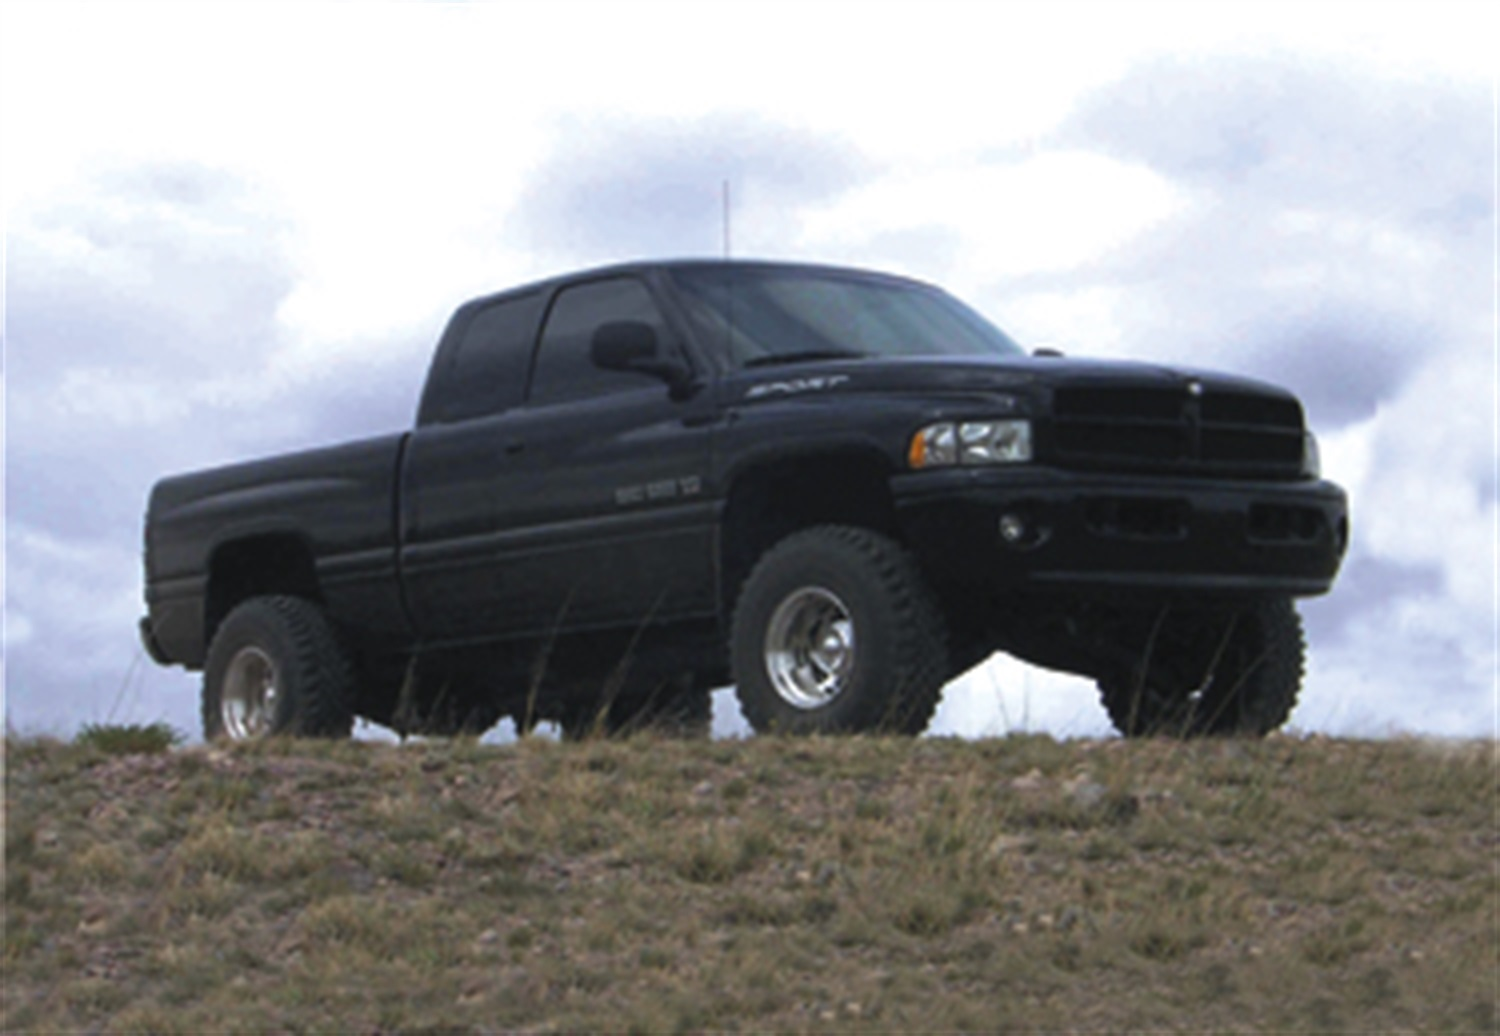 accessories body lift kit dodge ram 1500 fast free shipping mj ebay. Cars Review. Best American Auto & Cars Review